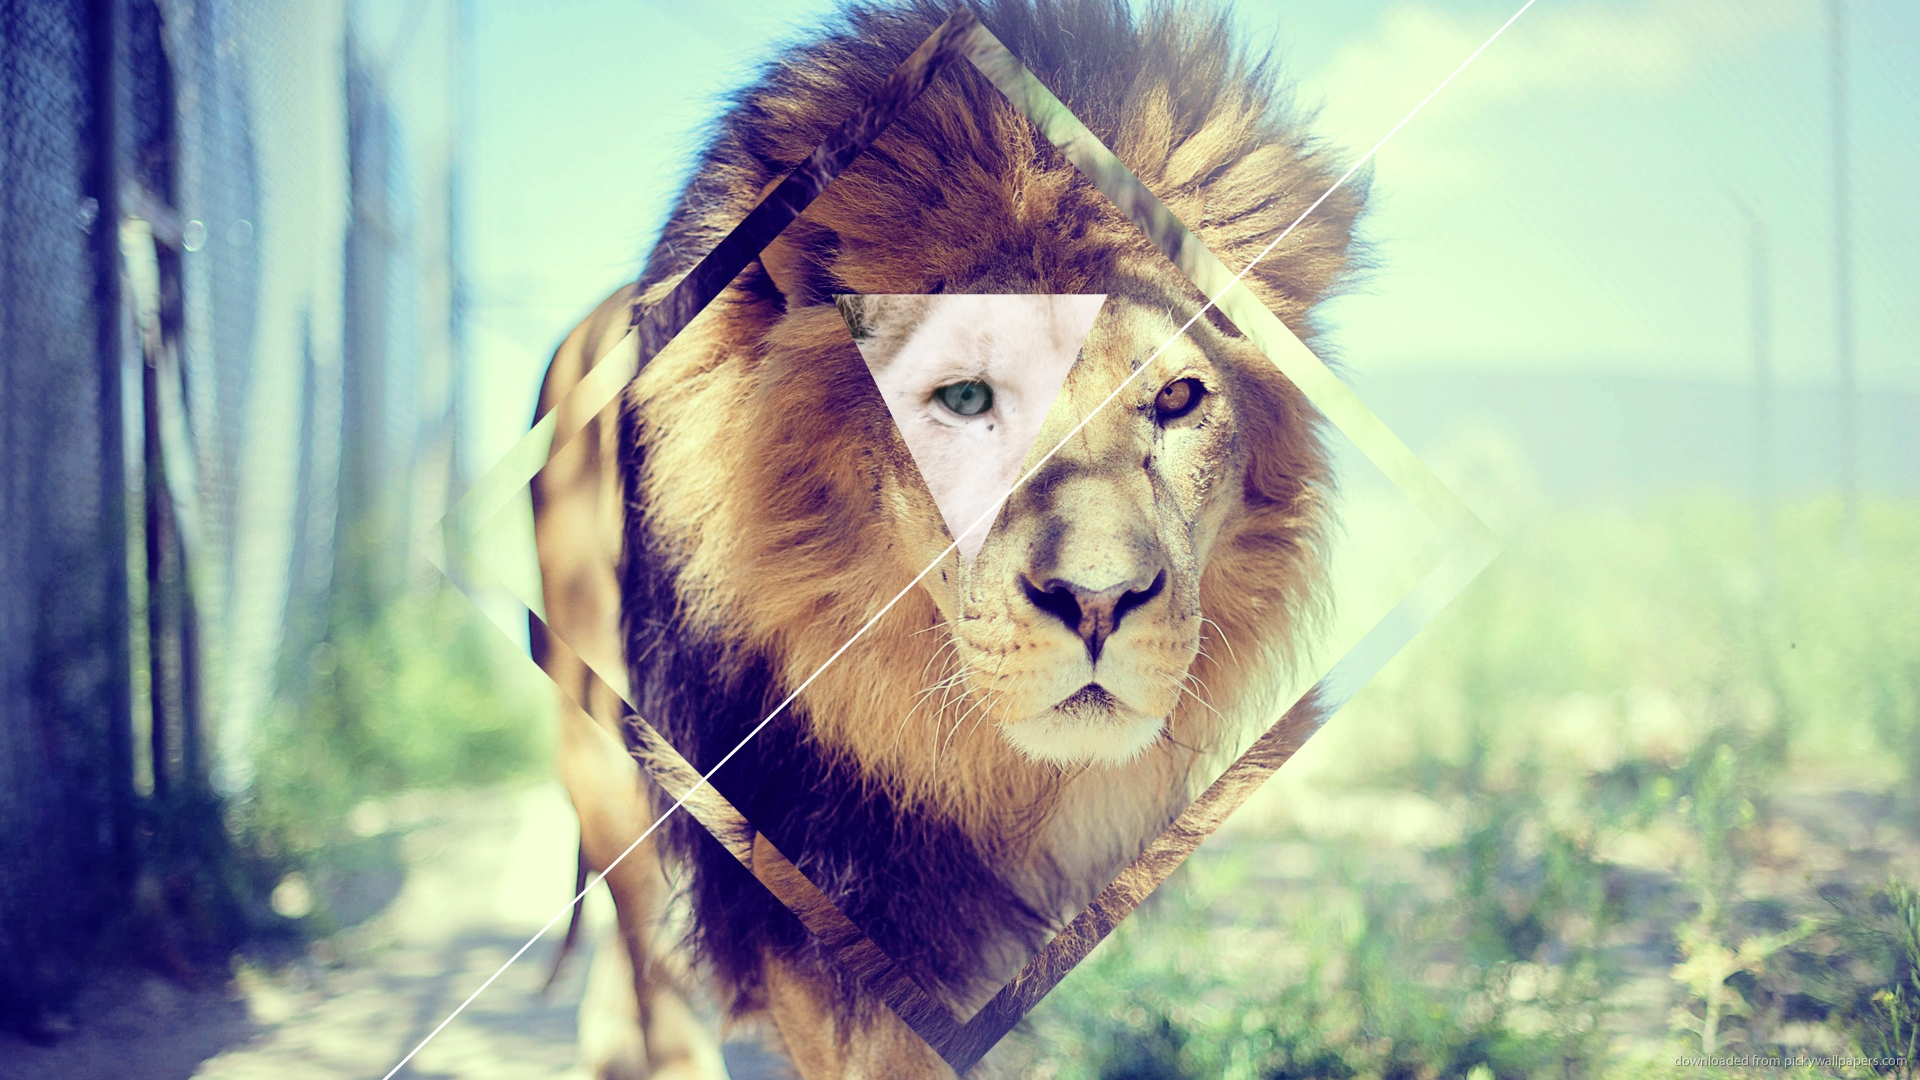 Lion hipster - photo#16